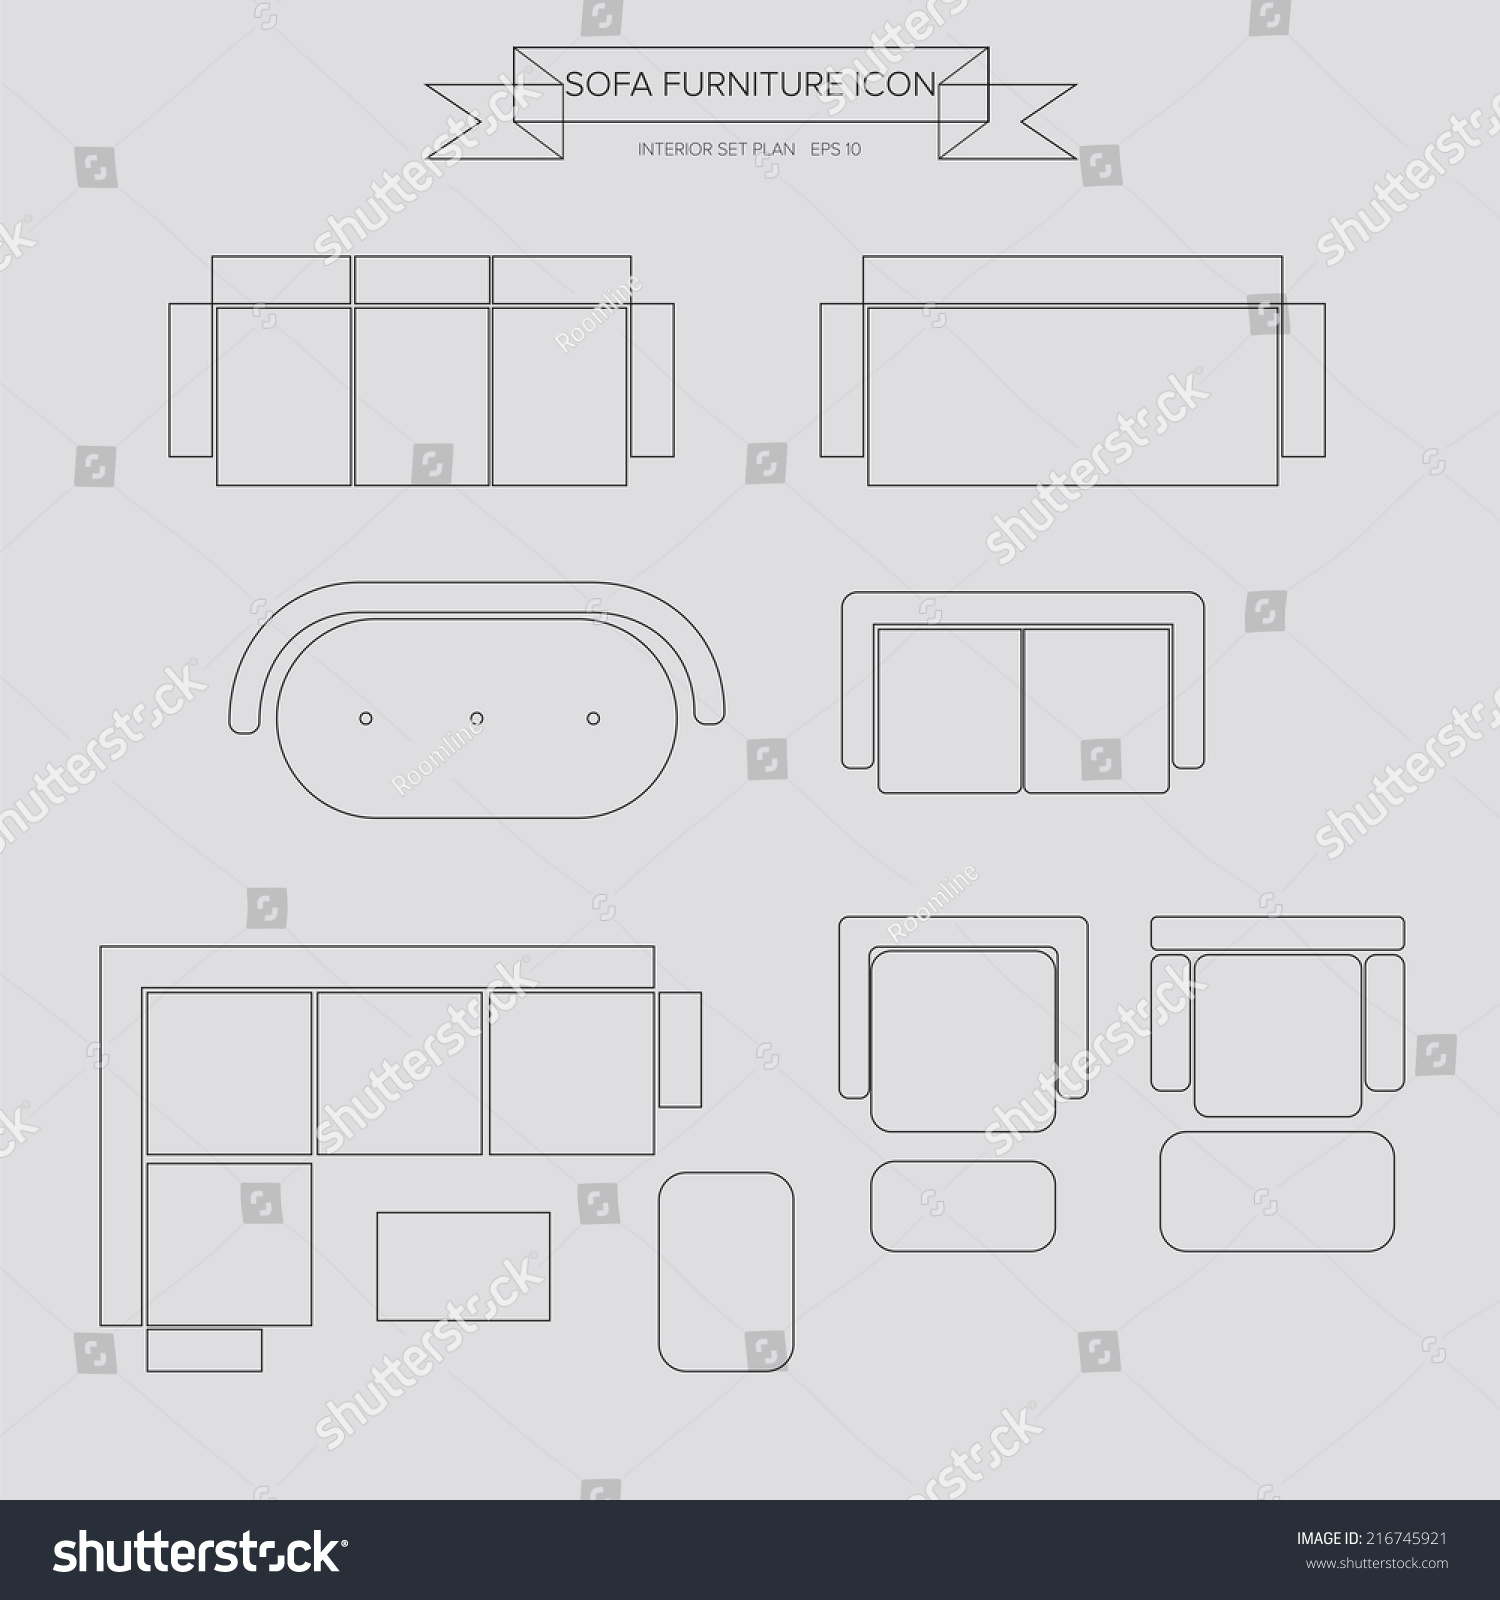 Sofa Furniture Outline Icon Top View Stock Vector HD (Royalty Free ... for Sofa Clipart Top View  588gtk